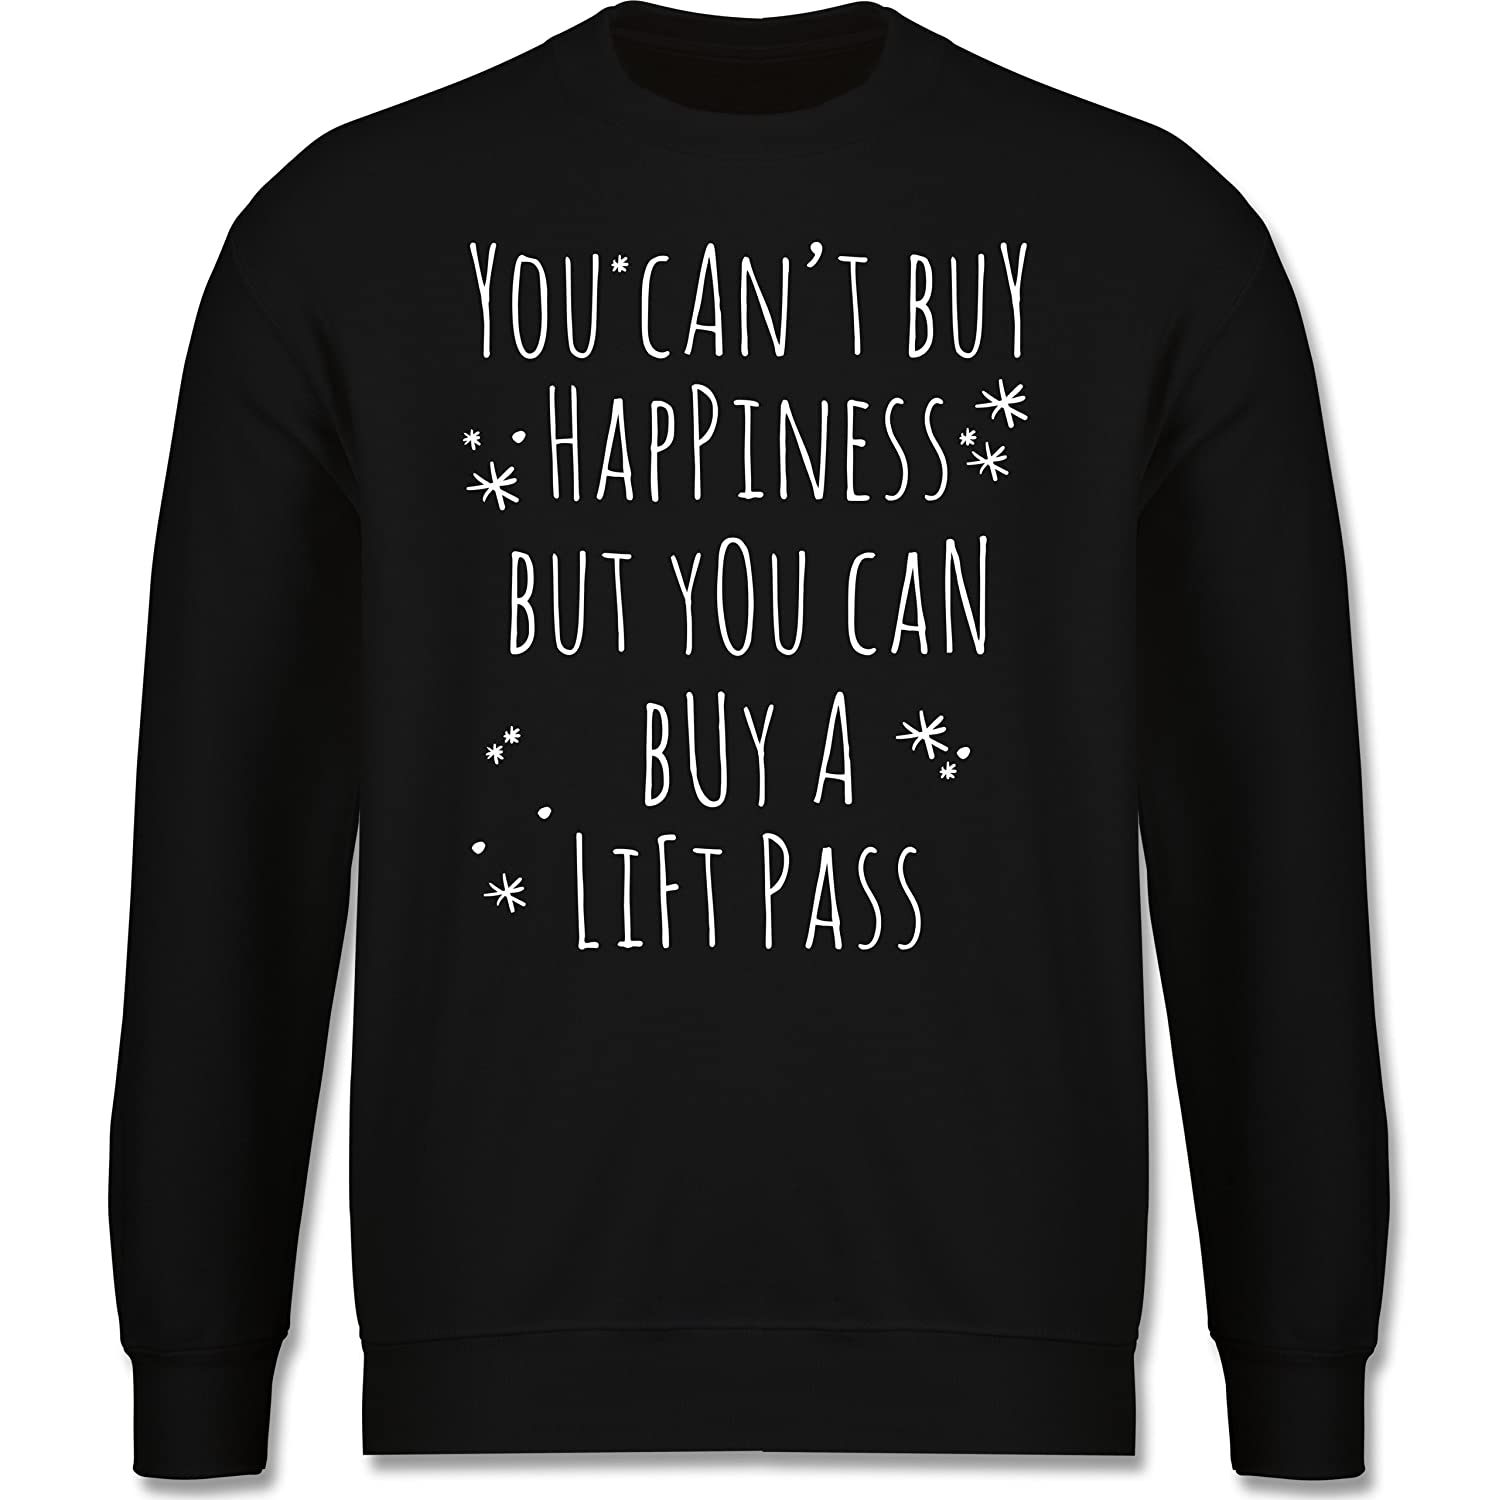 Wintersport - Buy Happiness Lift Pass Ski Snowboard - schlichter Herren Pullover